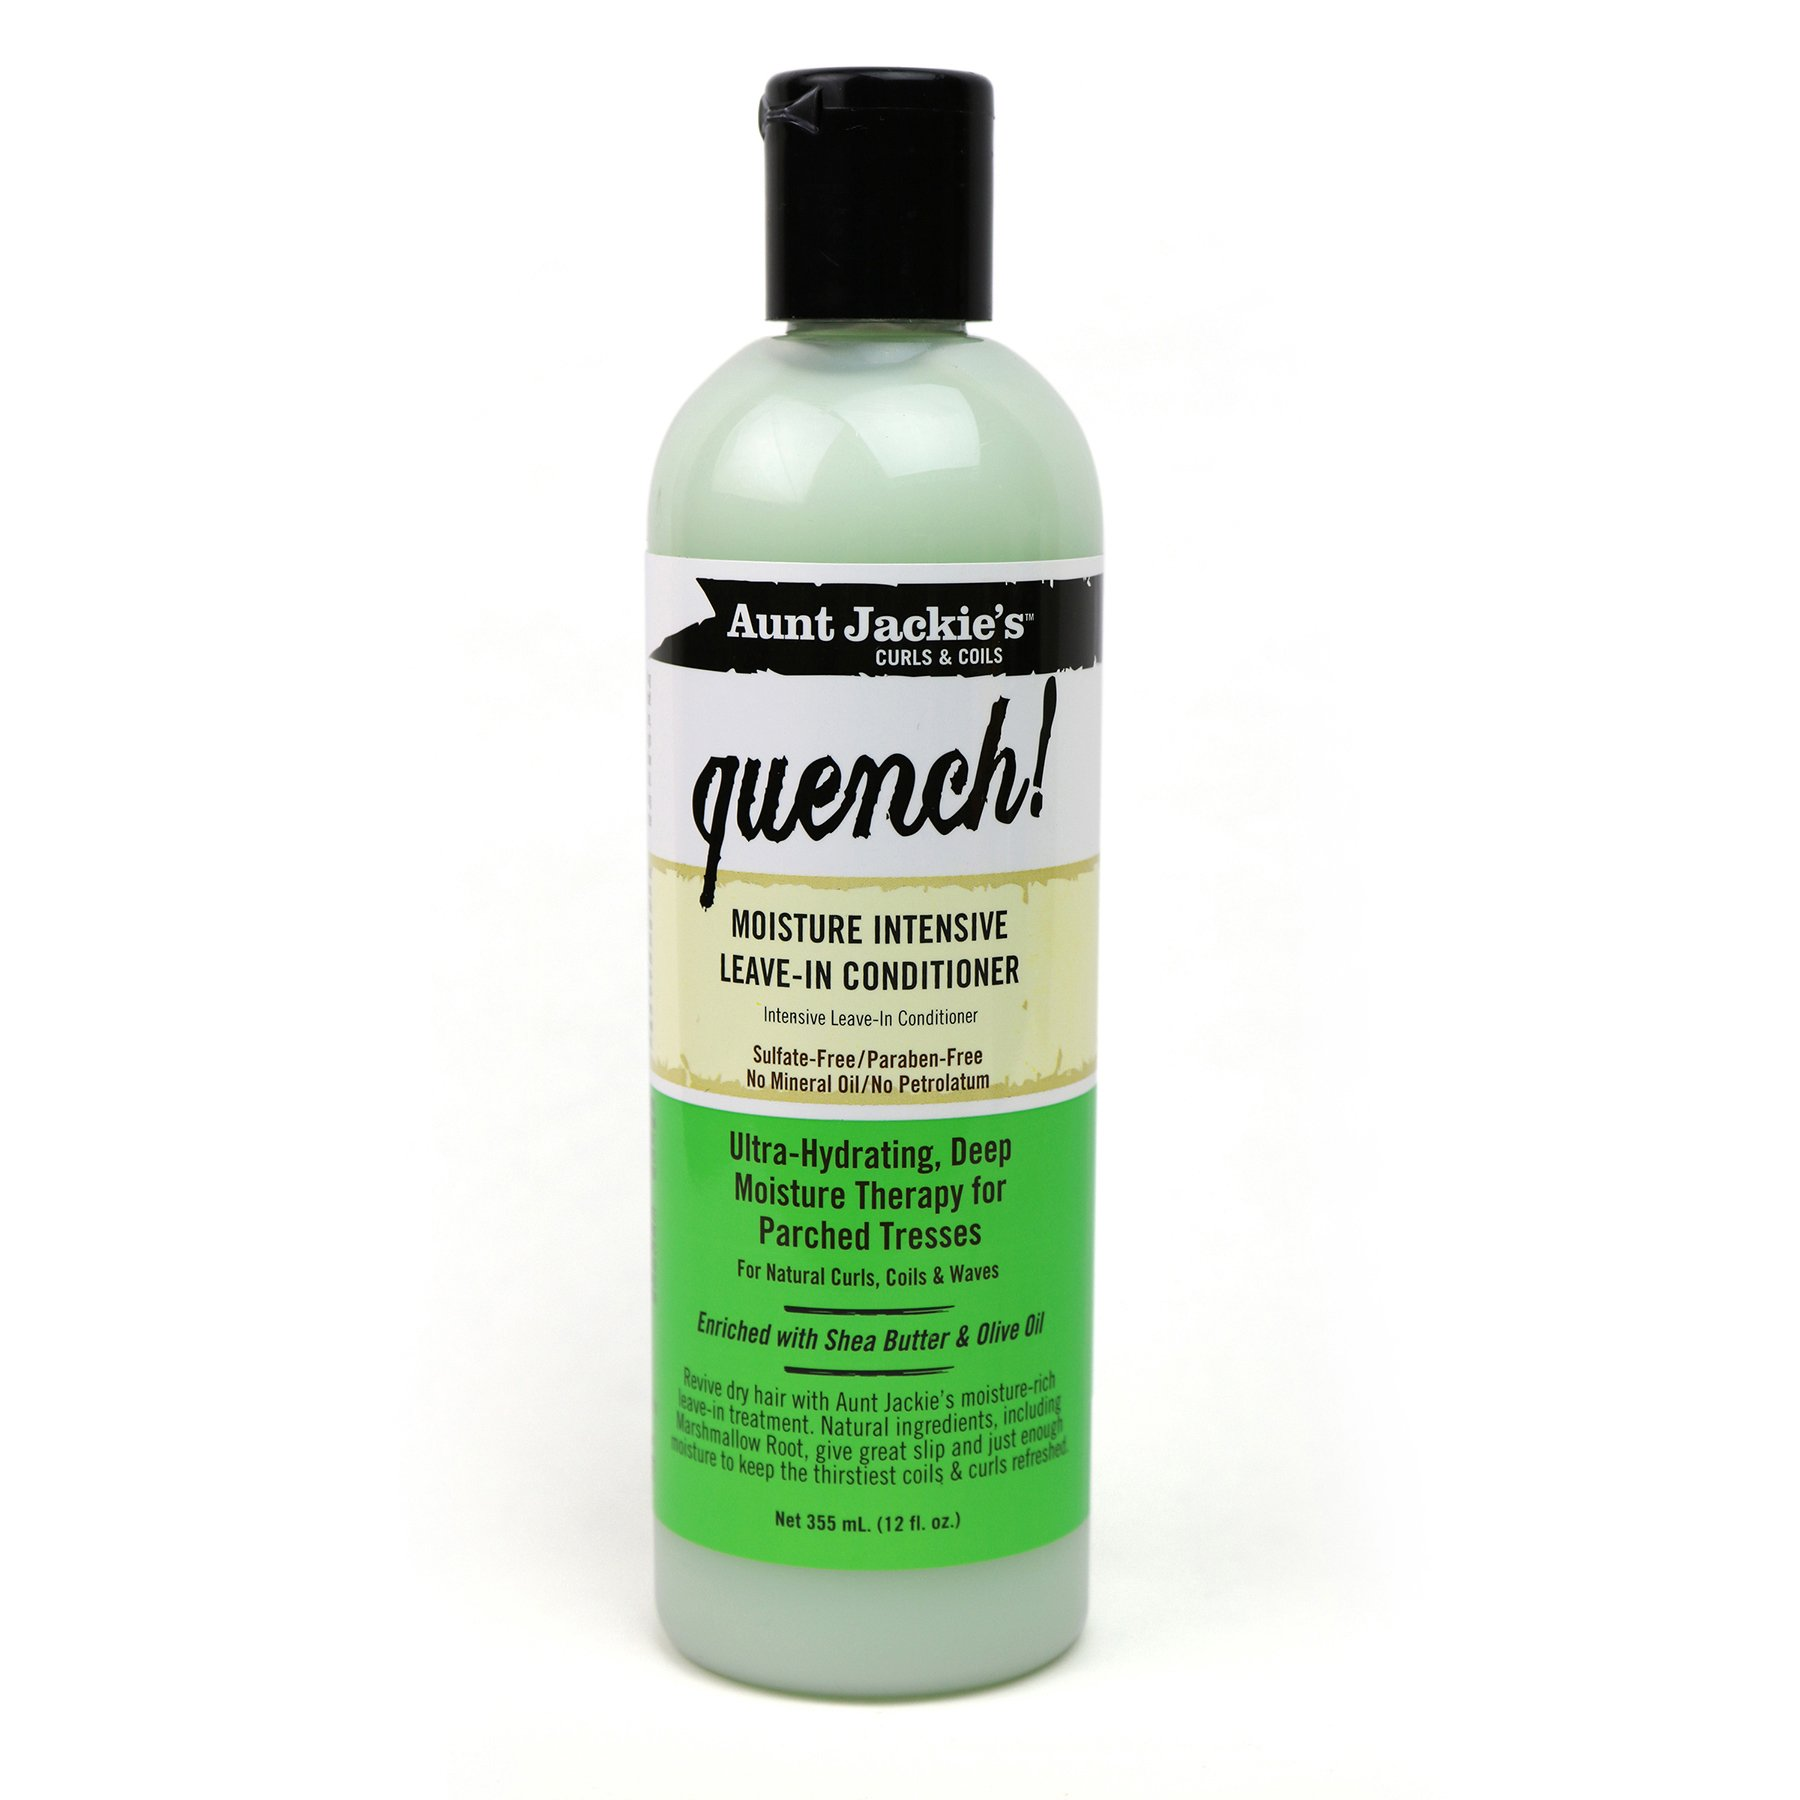 Aunt Jackie's Aunt Jackie's Quench, Moisture Intensive Leave-in Conditioner, Ultra-Hydrating, Deep Moisture Therapy for Parched Hair, 12 Ounce Bottle